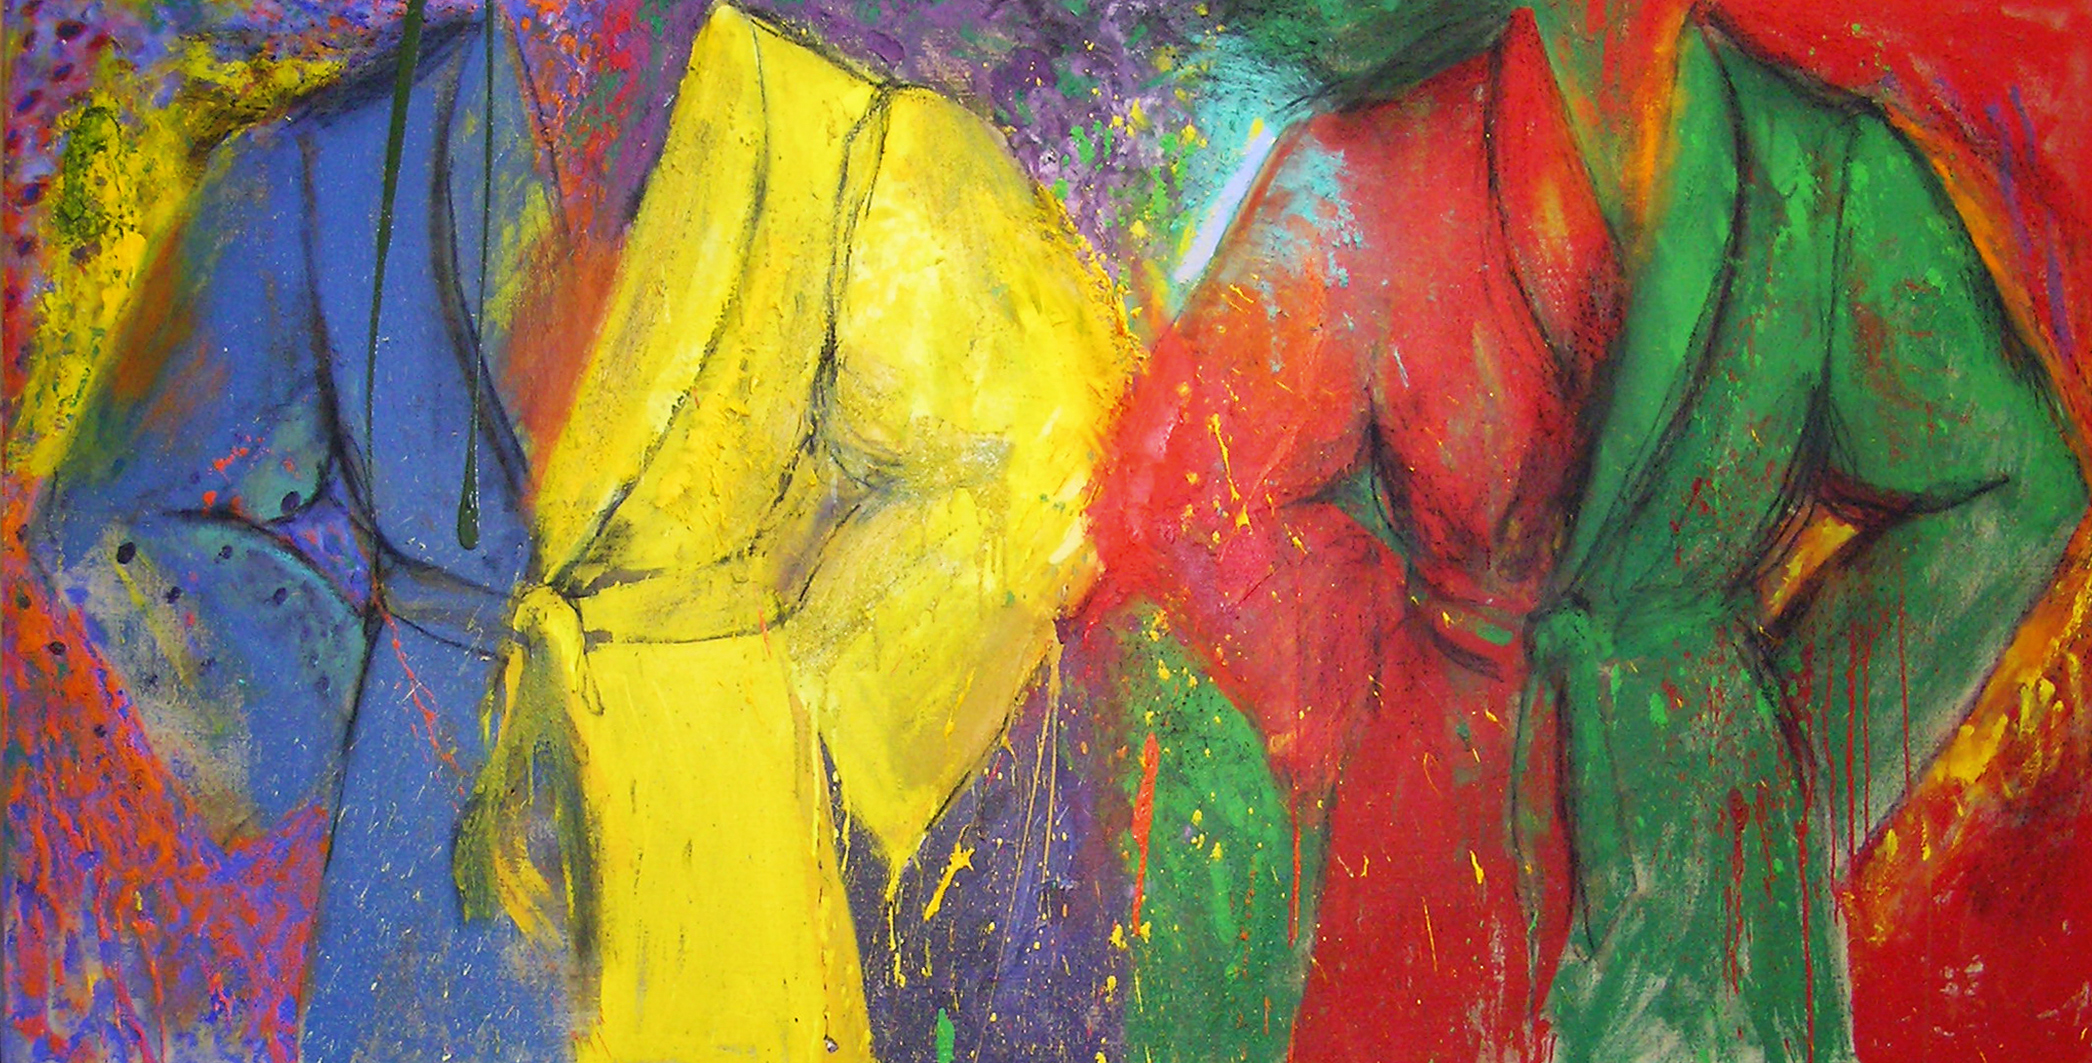 Diptych Jim Dine Robes Painting on Canvas in Primary Colors